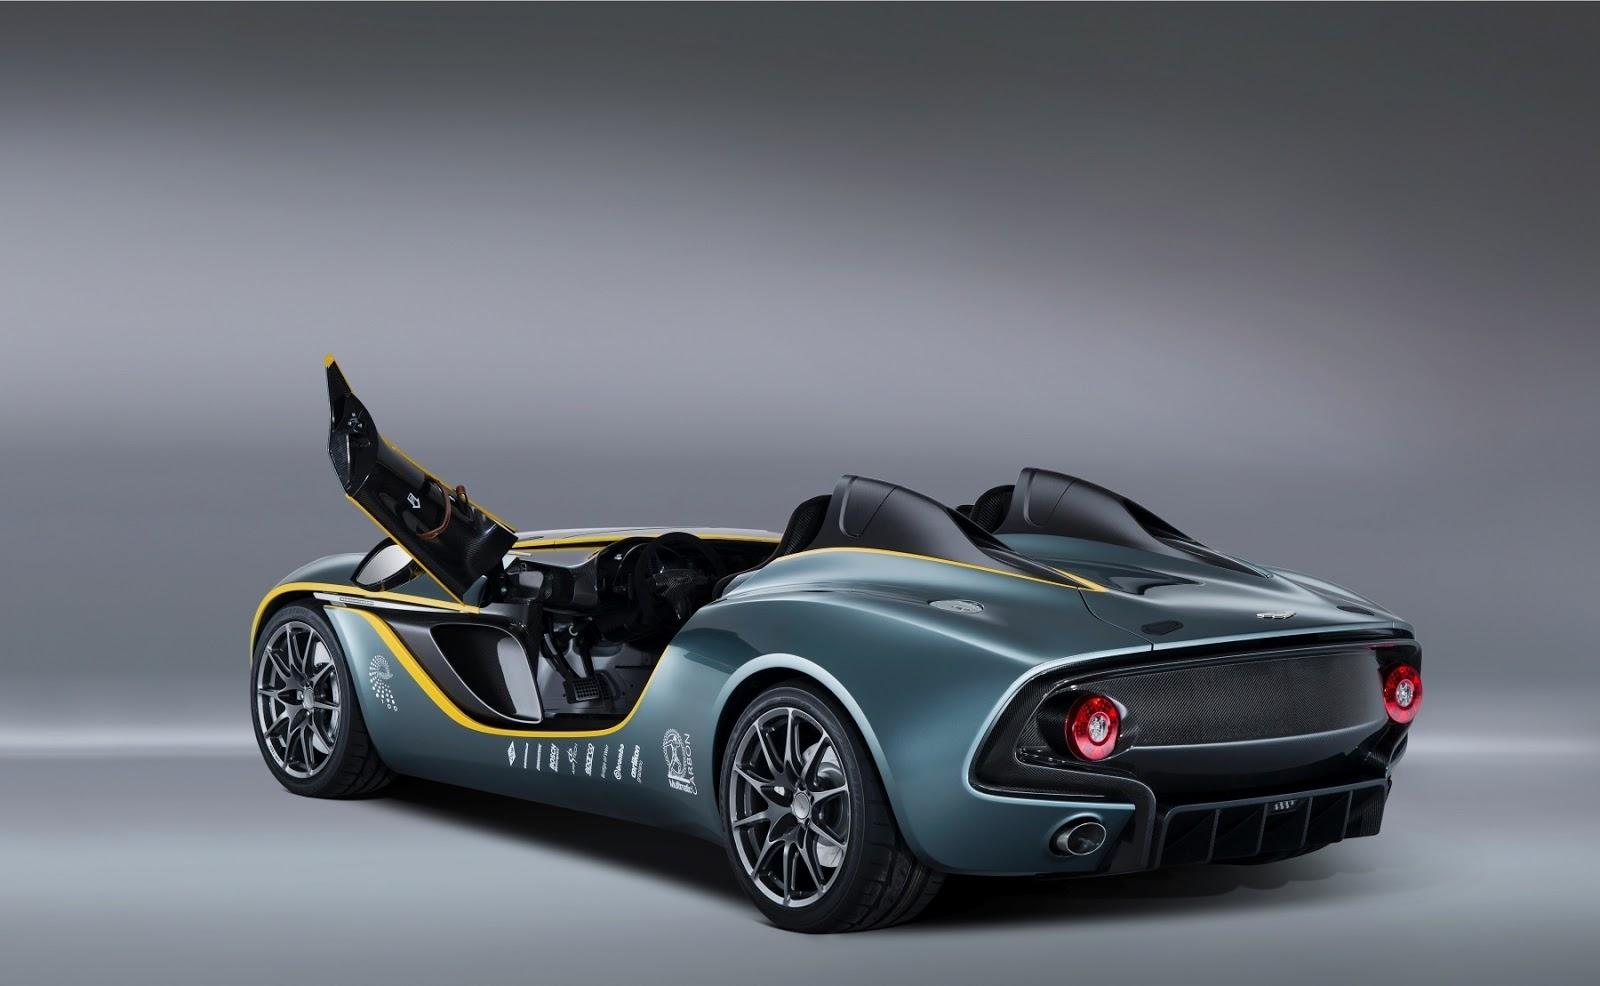 Aston Martin CC Speedster Concept Thats What I Call A Th - Aston martin concept